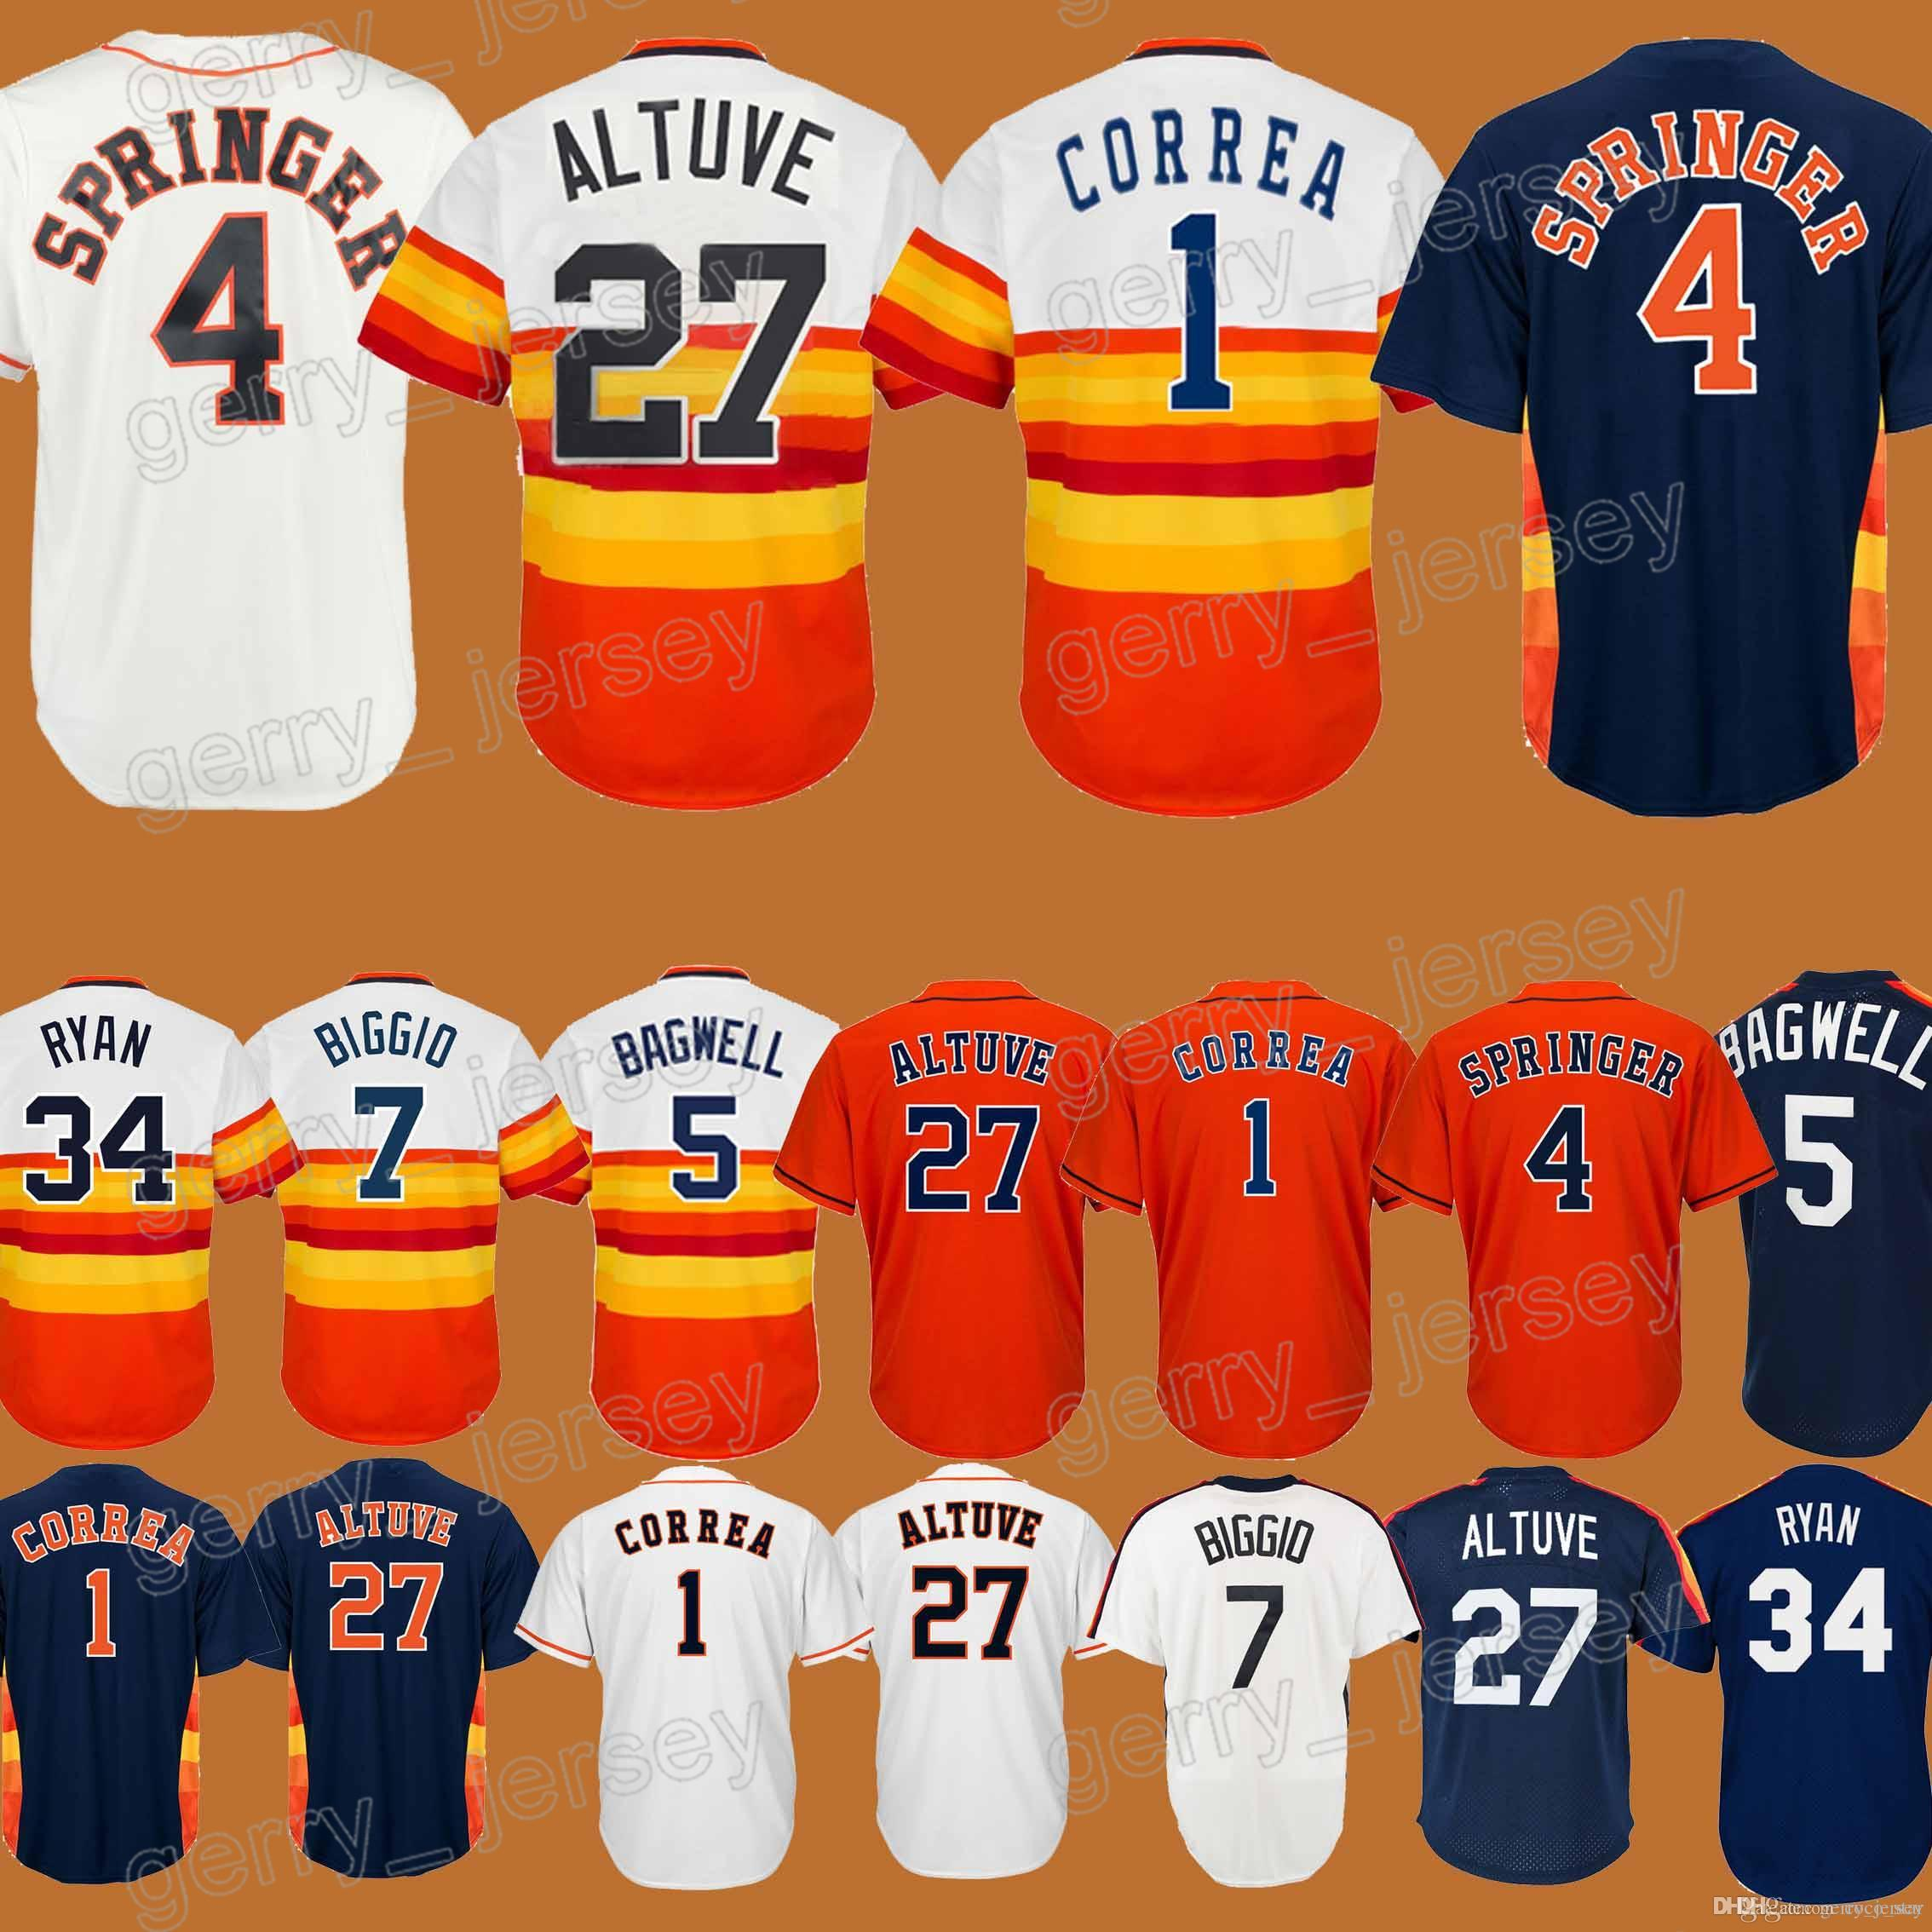 the latest 3ccc4 03460 low price 4 george springer jersey bc17c 9795a